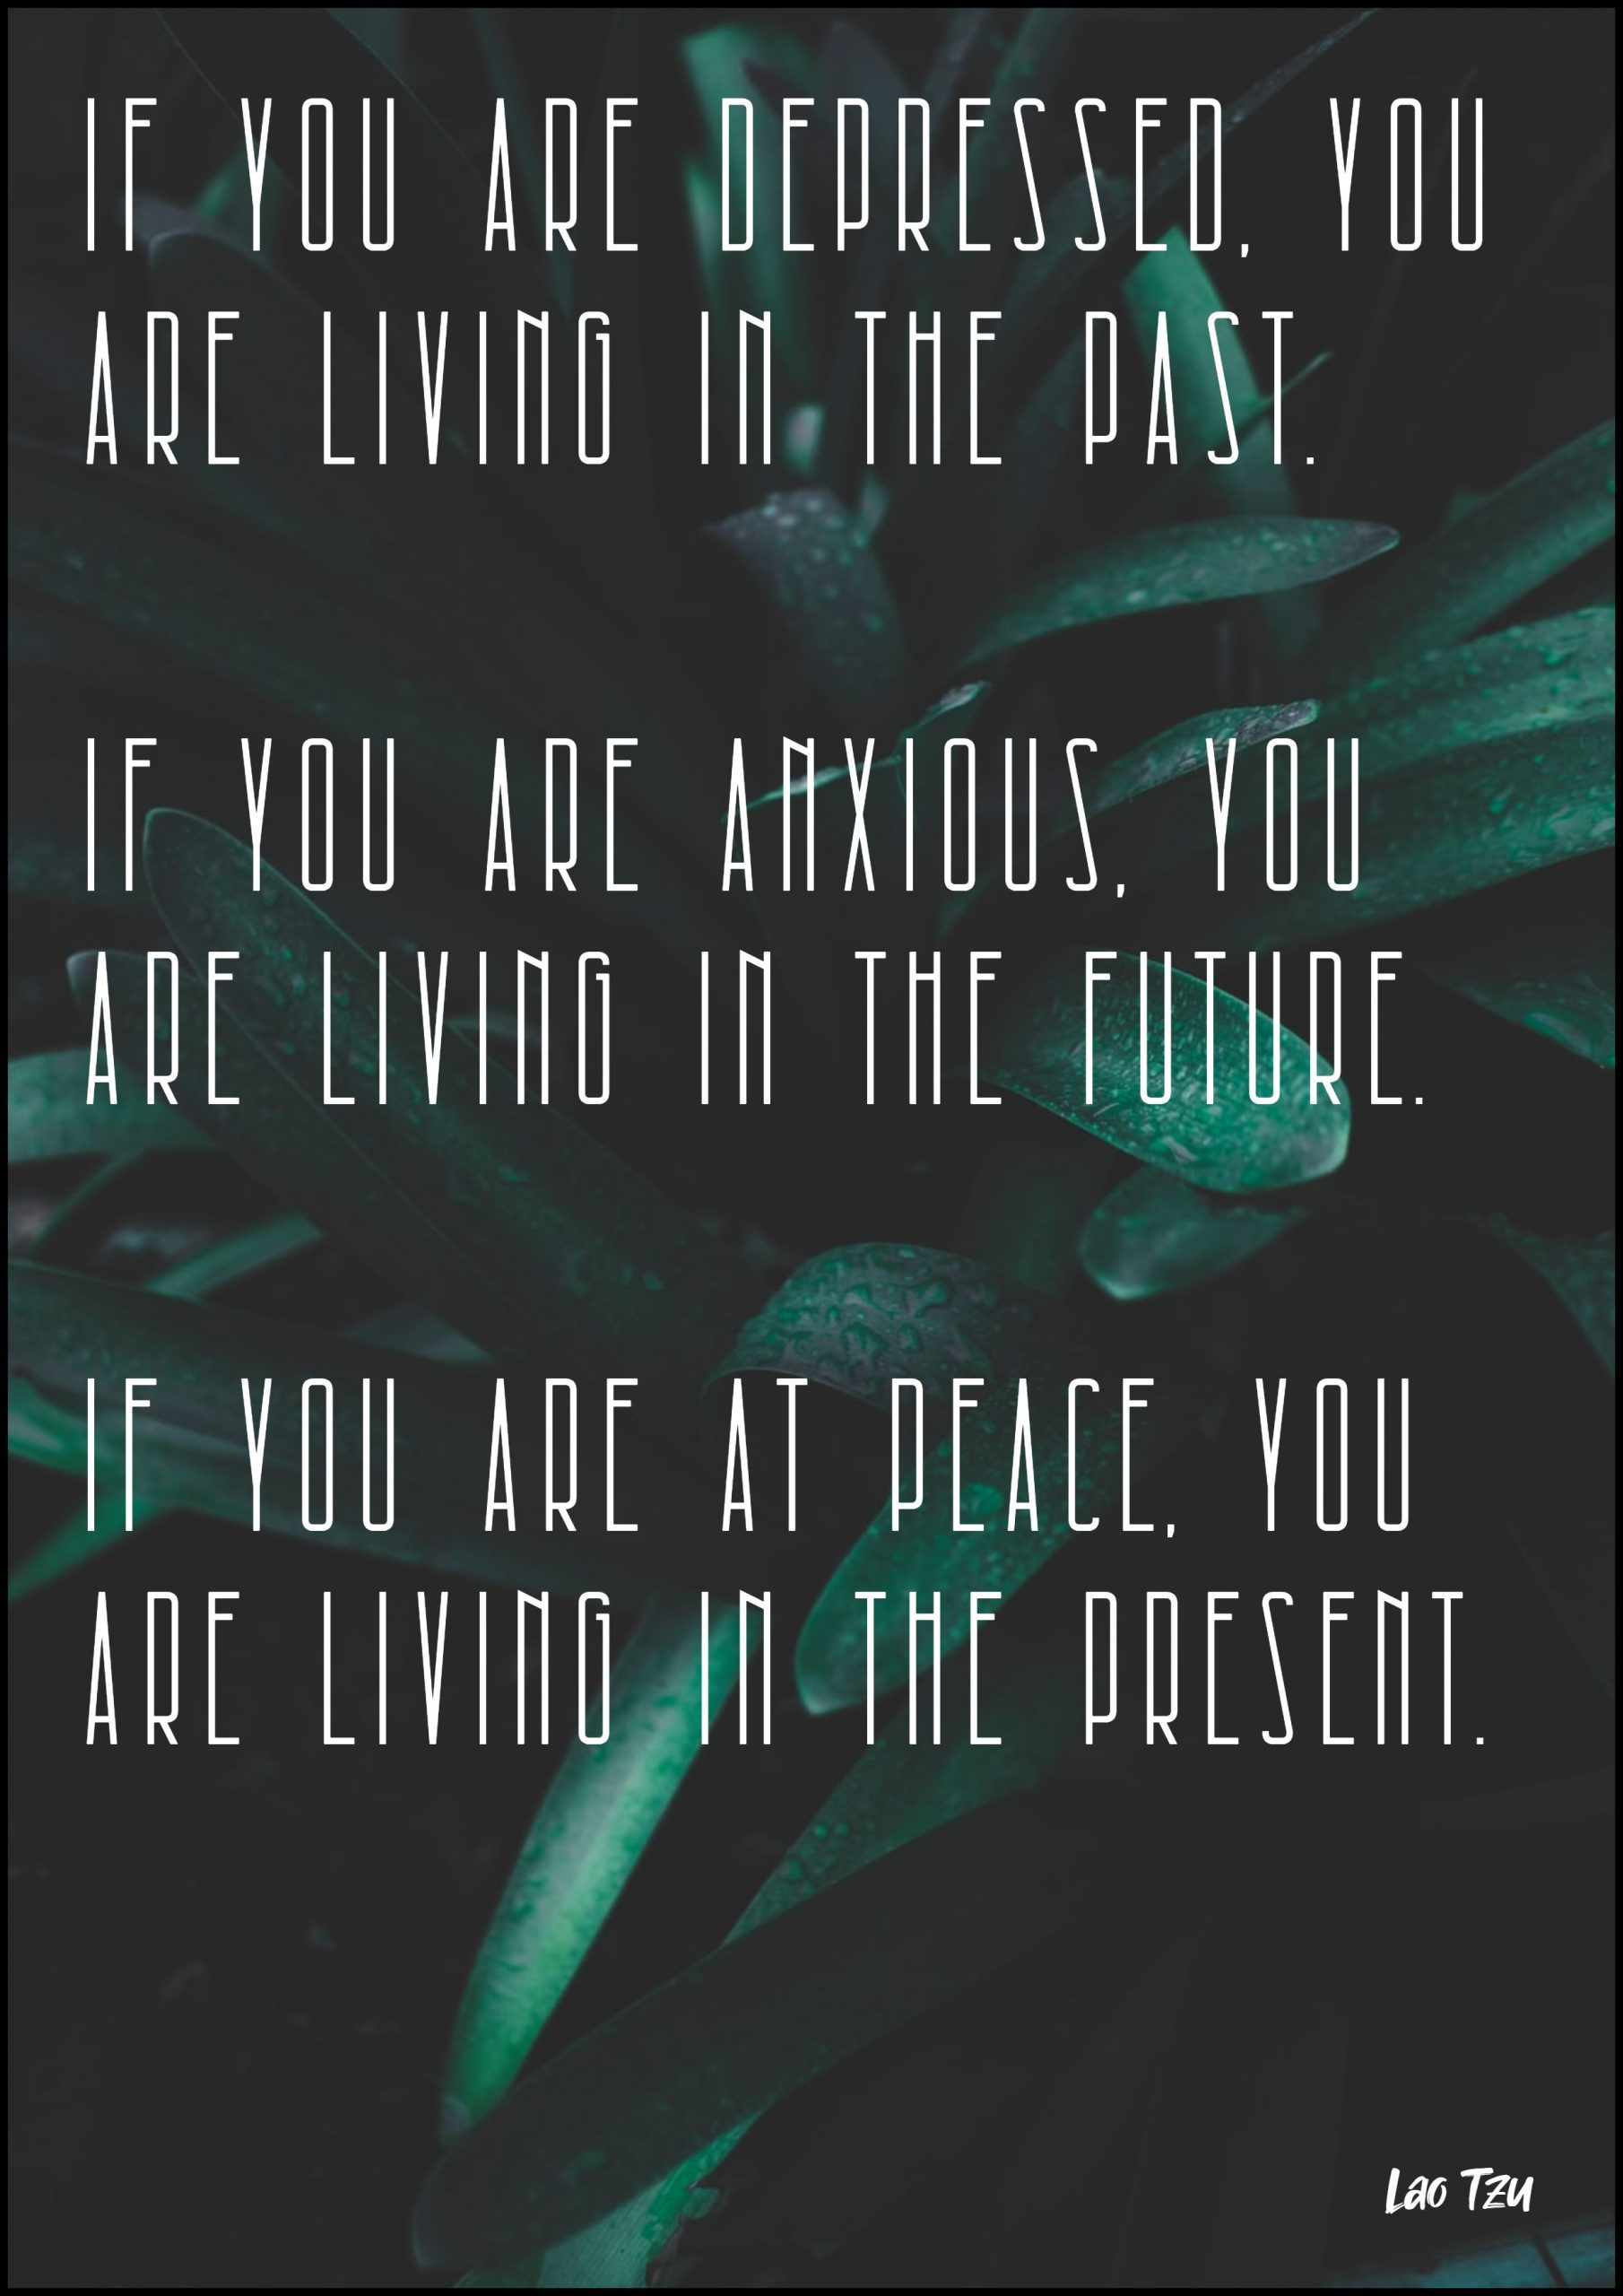 Quotes image of If you are depressed, you are living in the past. If you are anxious, you are living in the future. if you are at peace, you are living in the present.